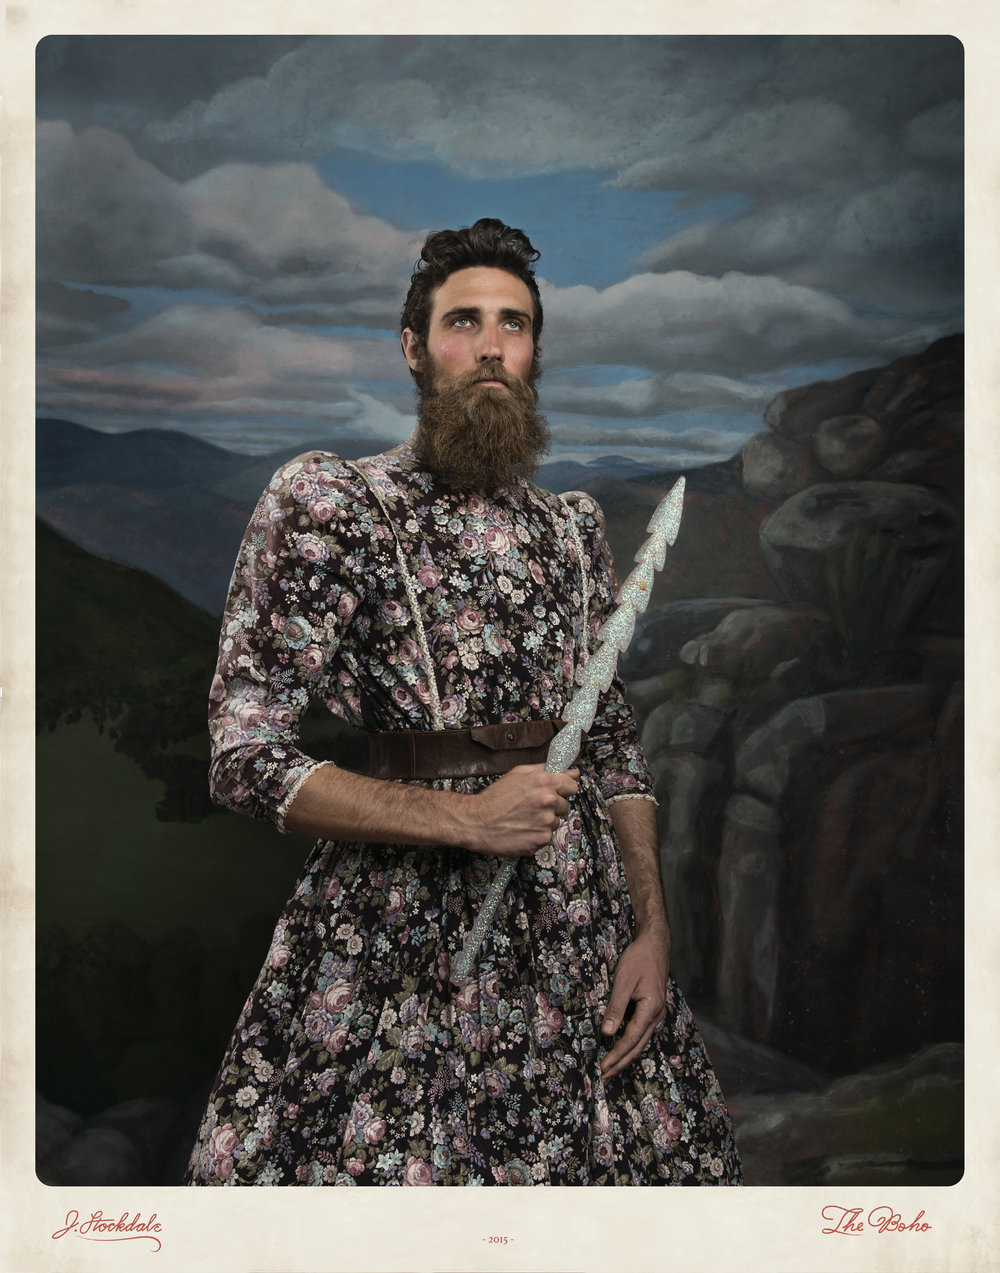 Jacqui Stockdale Man of Quinn 2016 Type C Print, edition of 8 + 2AP 140 x 110cm courtesy of the artist & THIS IS NO FANTASY and dianne tanzer gallery  AUD$5,500 unframed including commission and GST AUD$1,000 for framed edition including commission and GST